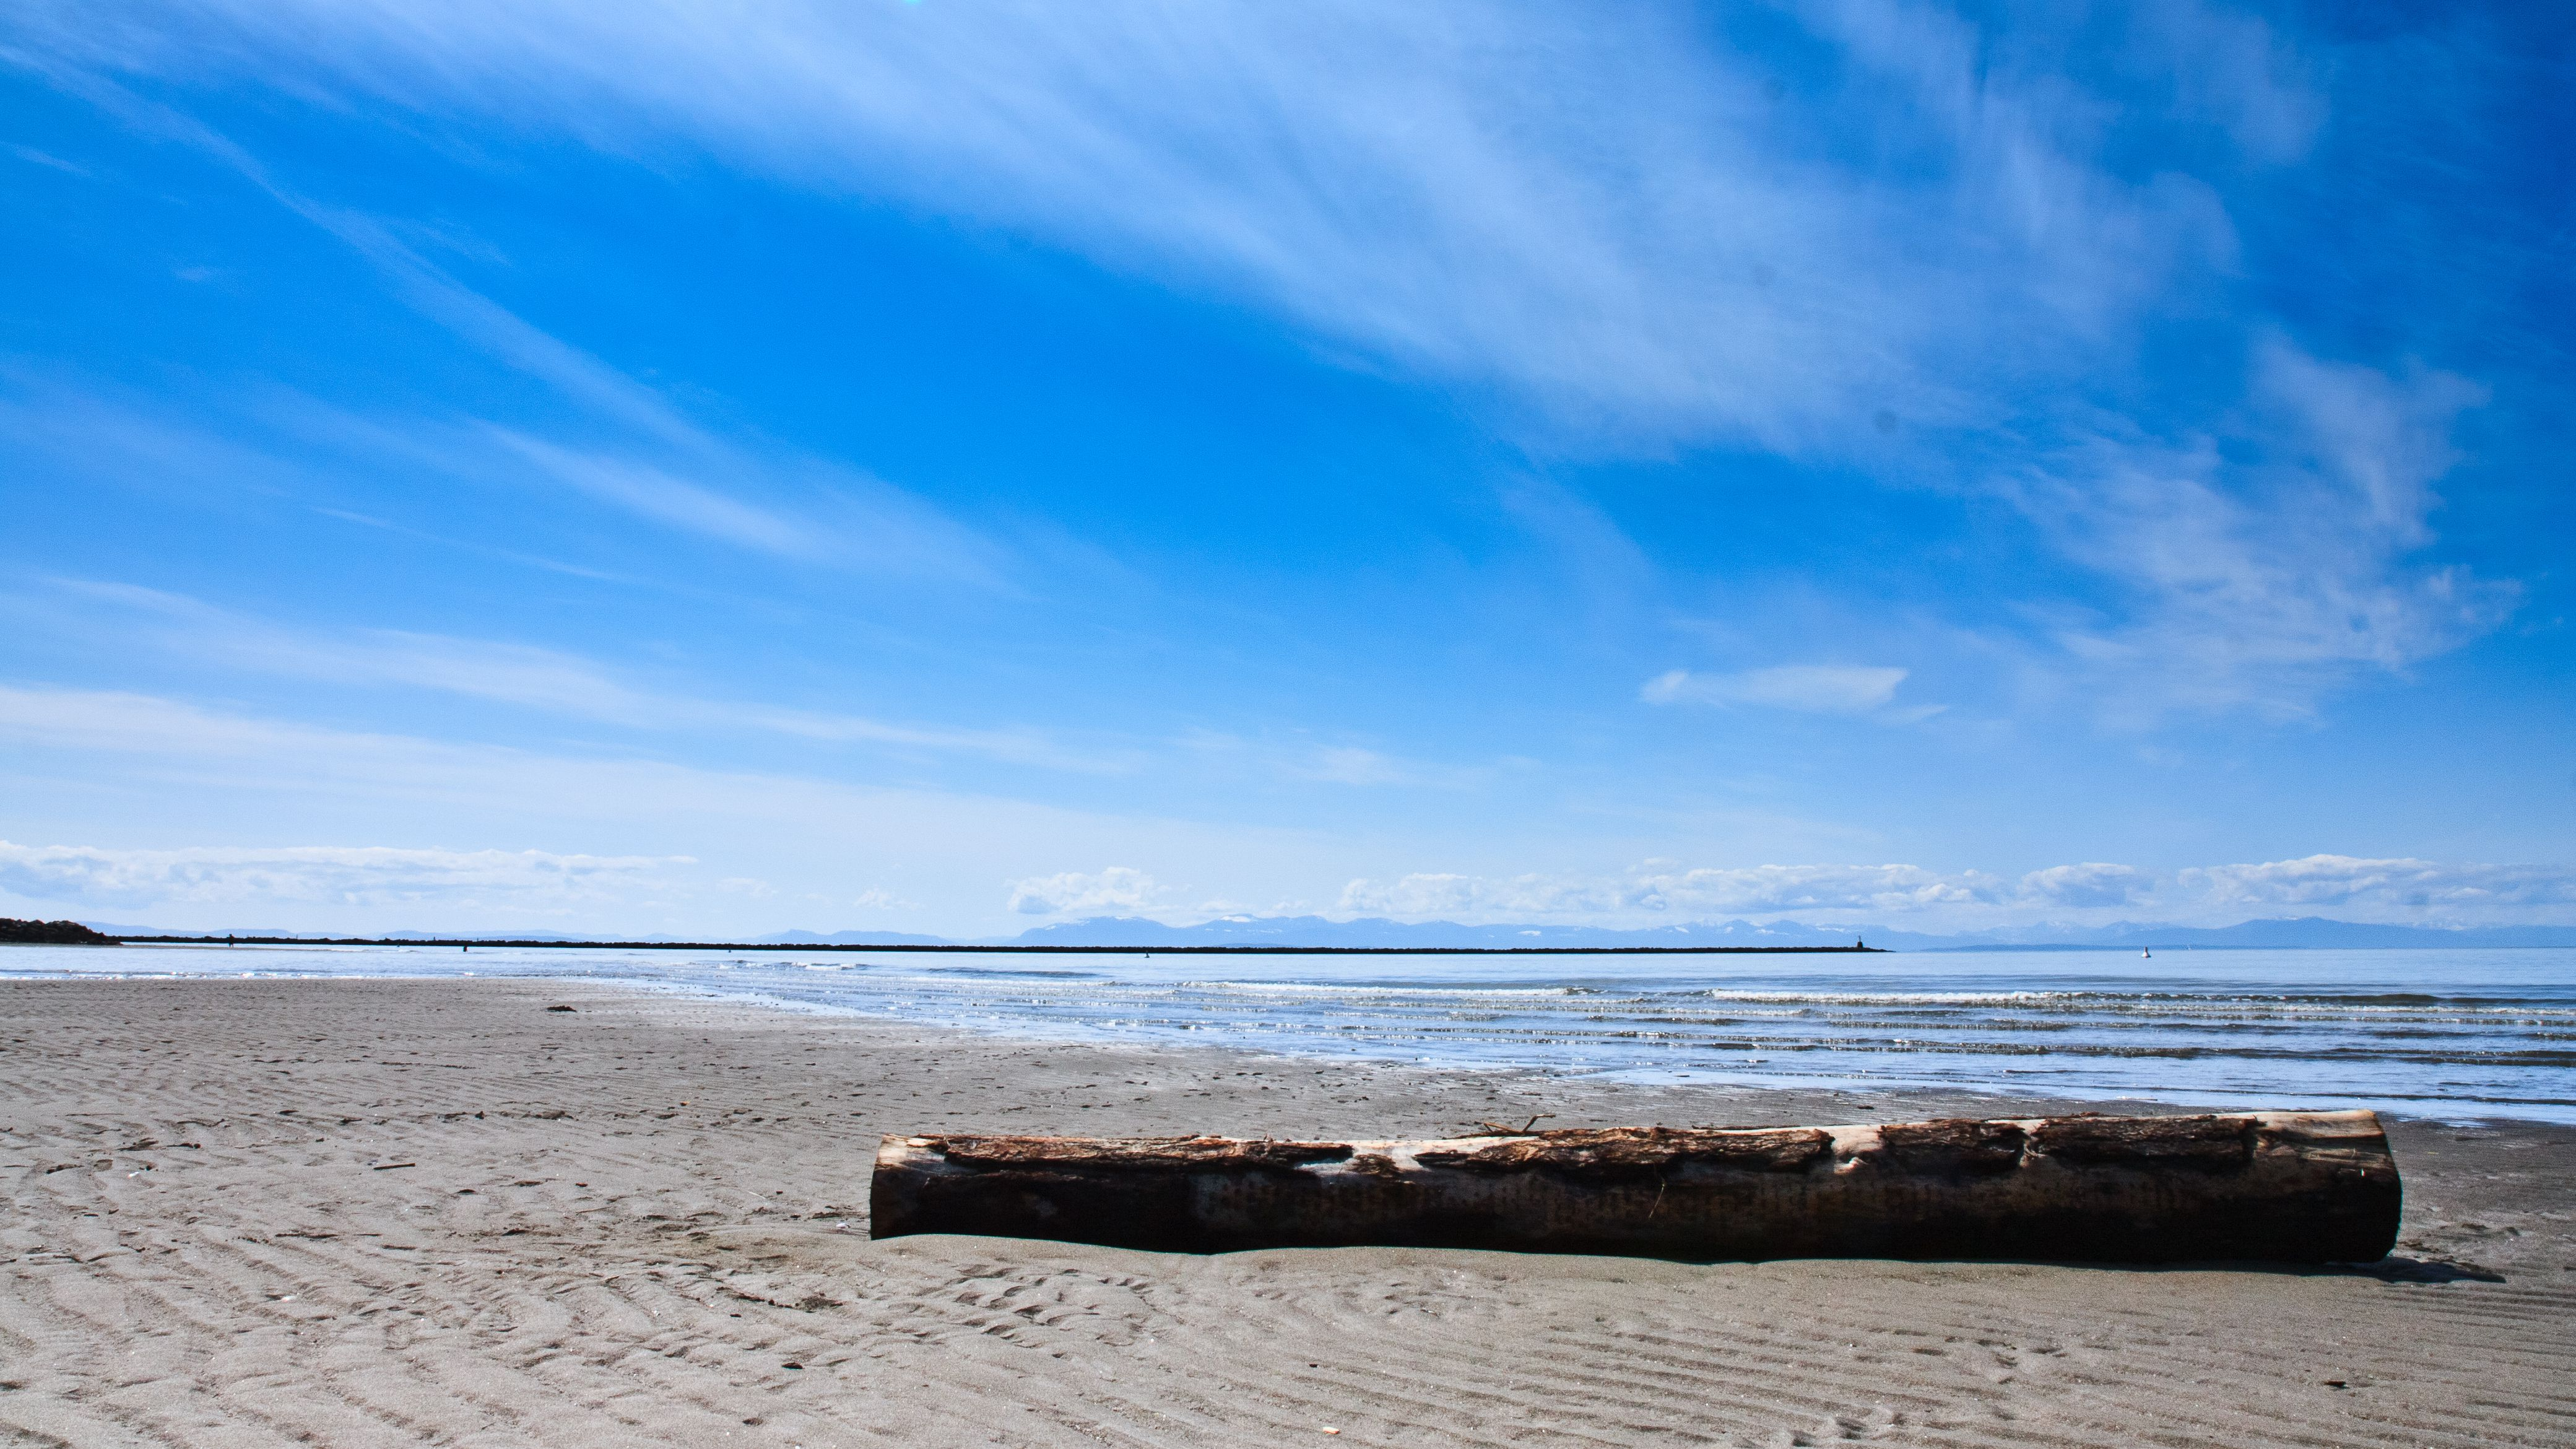 Wreck Beach in Vancouver, BC, Canada